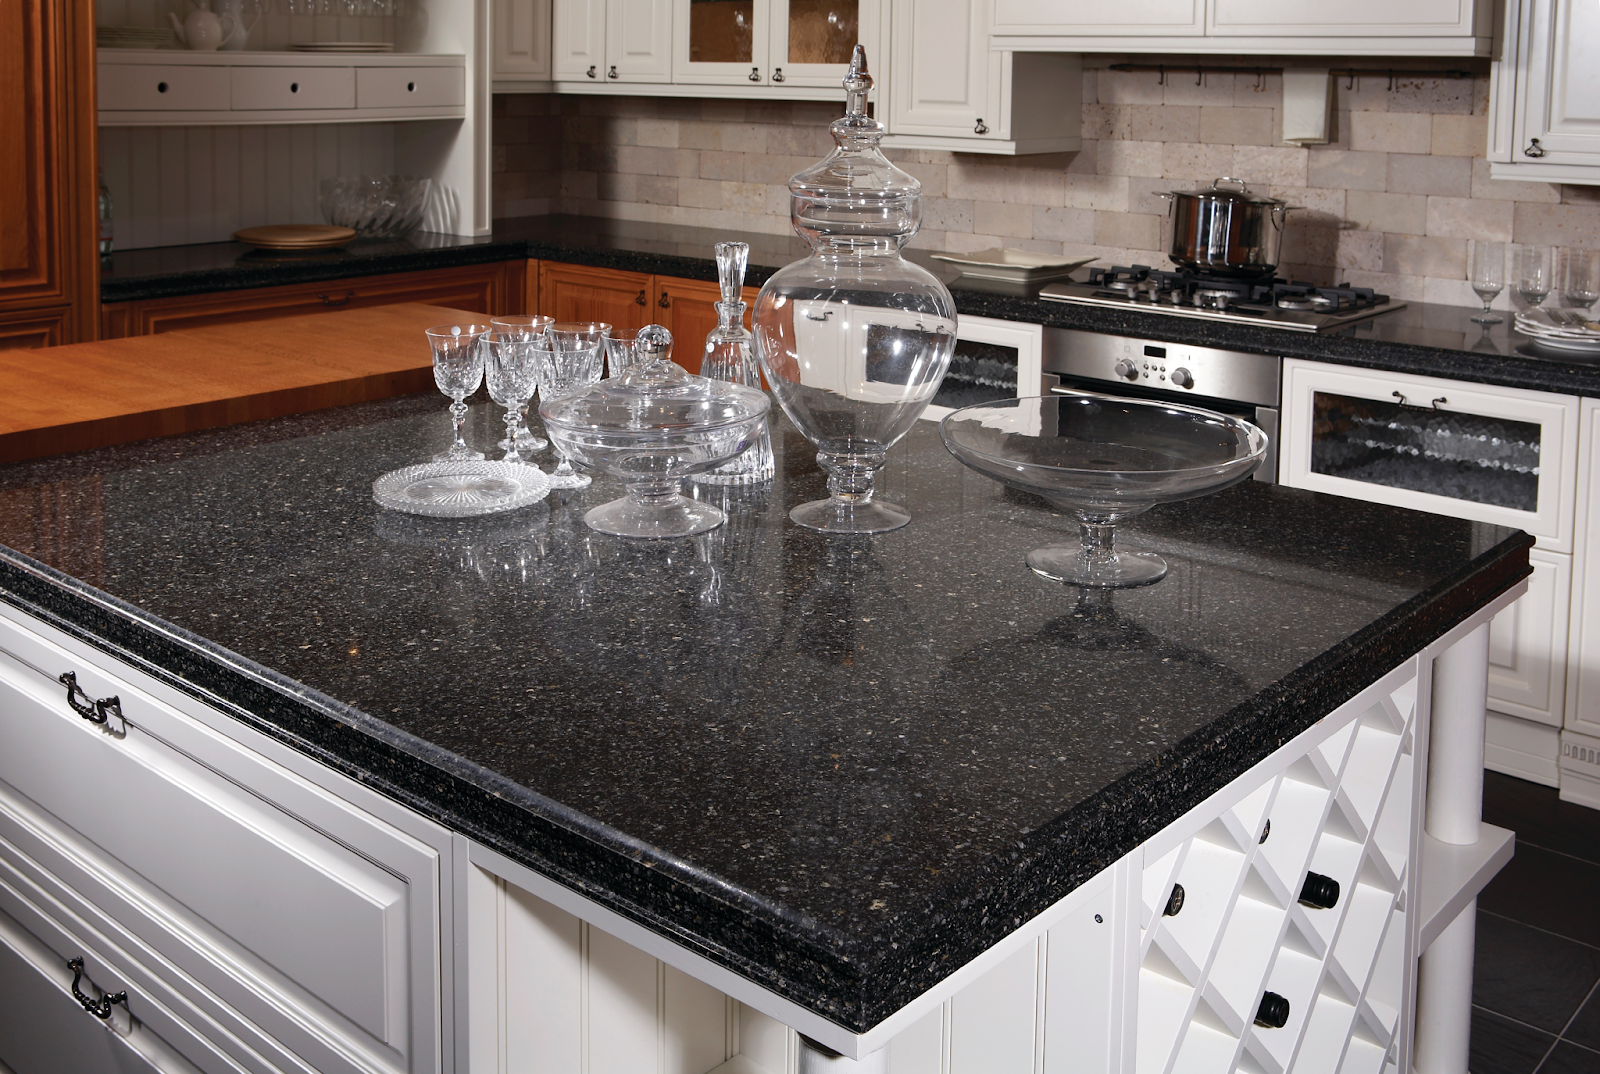 Black Quartz Countertops 9 Stunning Design Ideas For Your Home